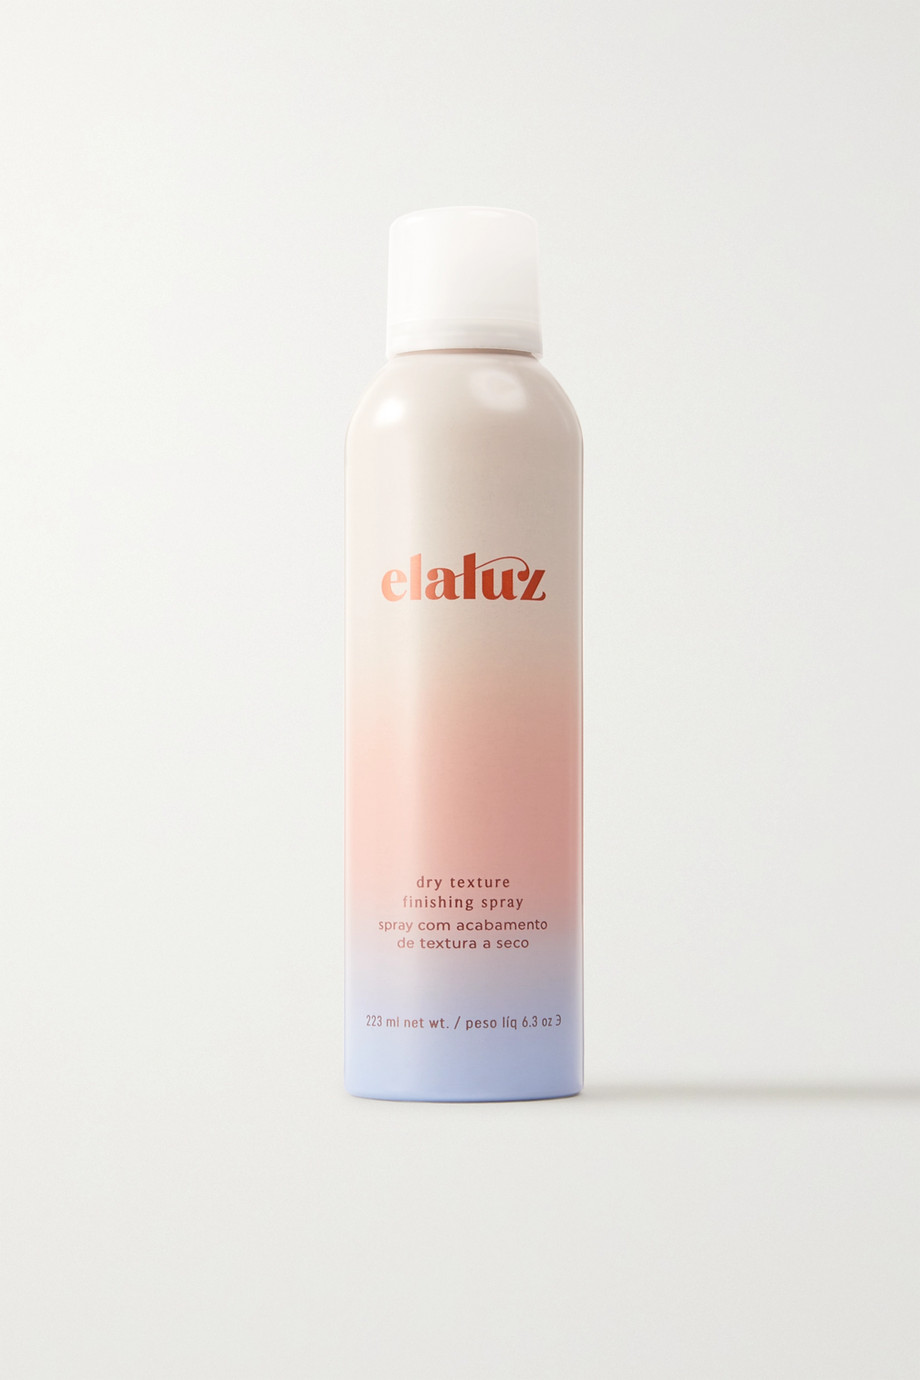 Elaluz Dry Texture Finishing Spray, 223ml